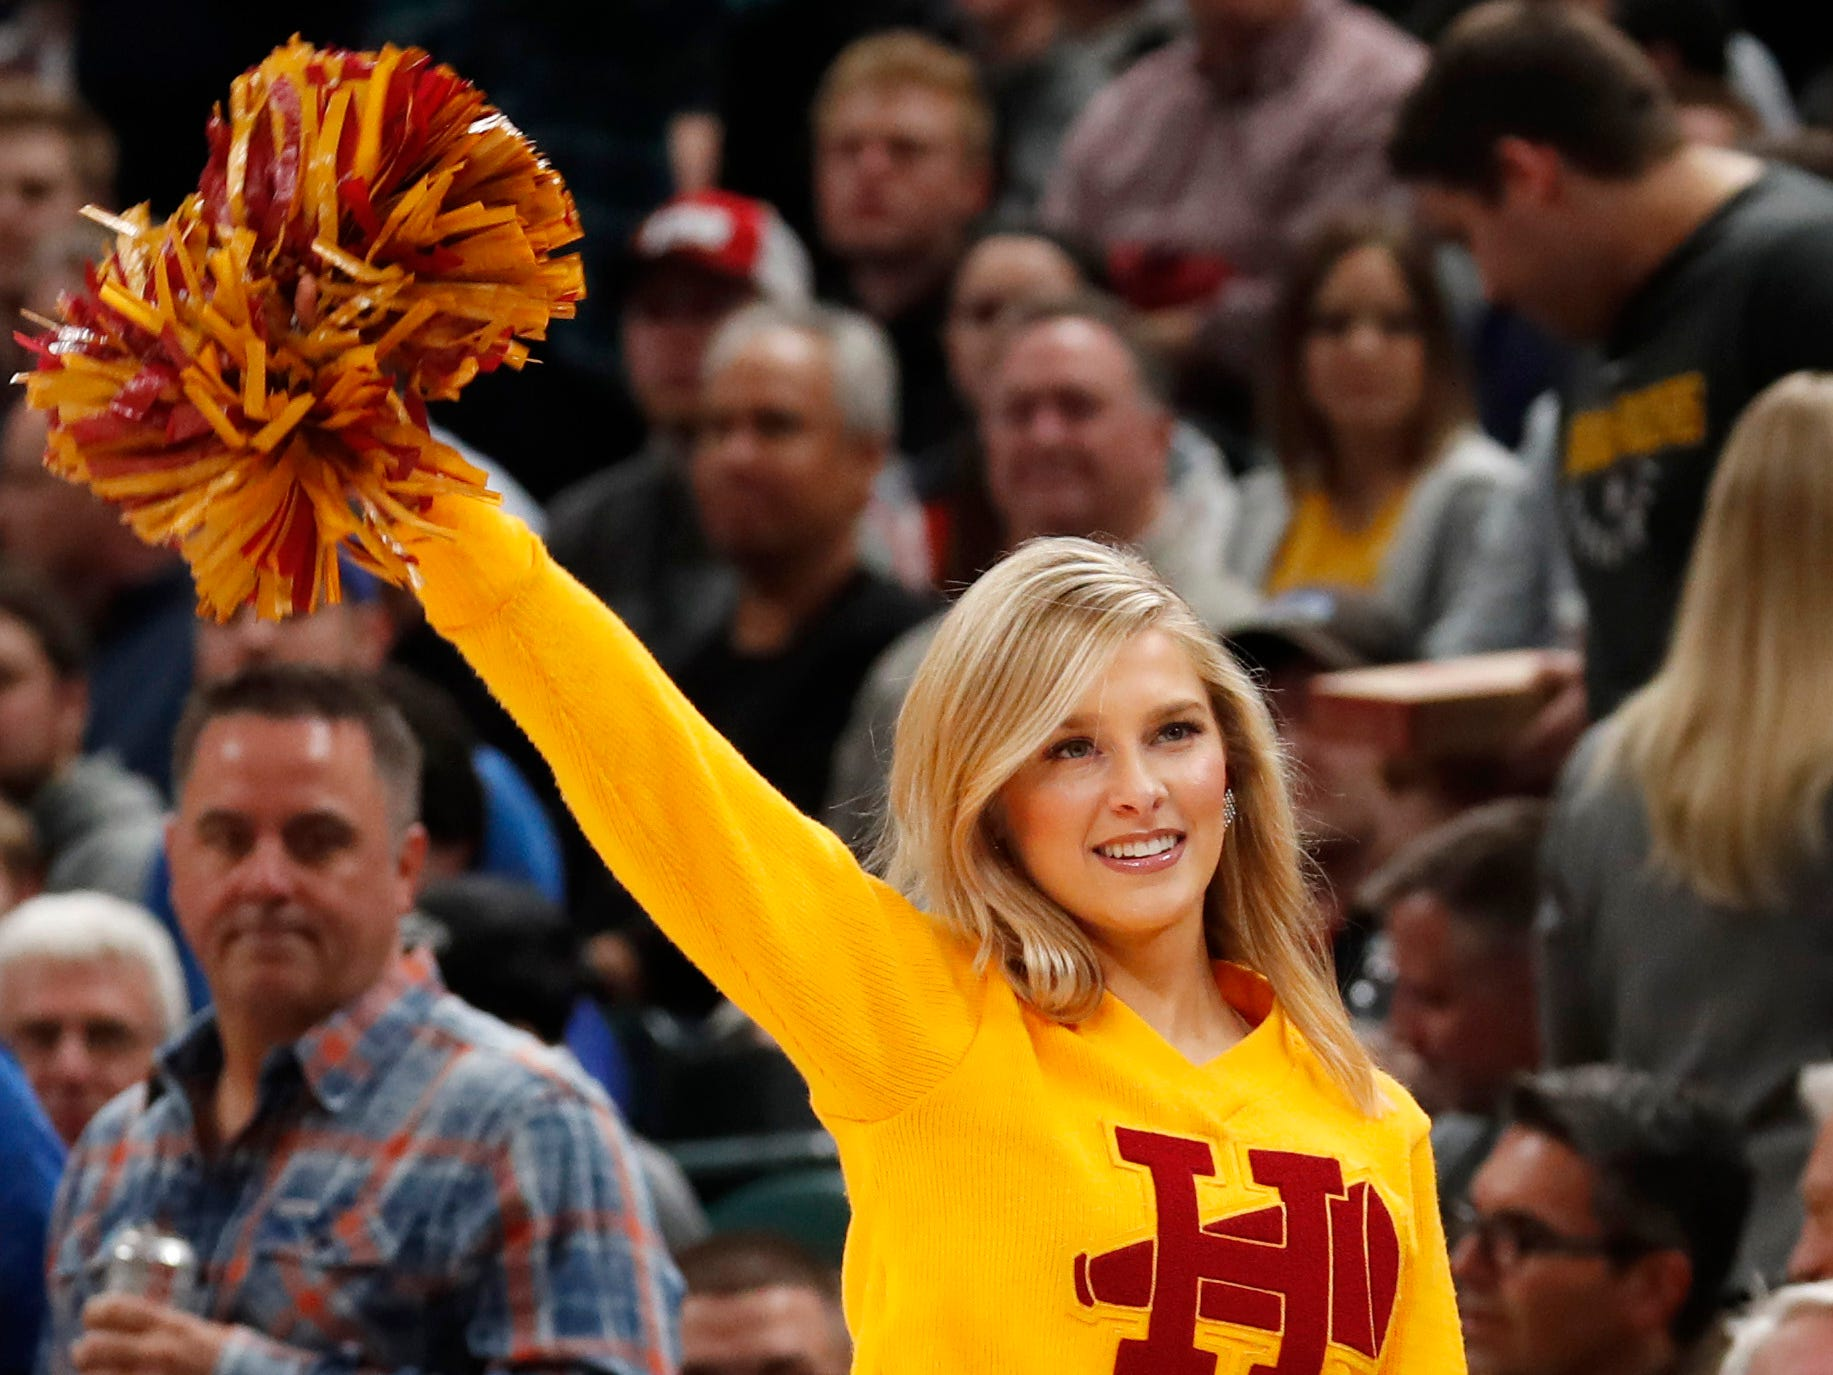 Feb. 7: An Indiana Pacers Pacemate performs a cheer before the game against the Los Angeles Clippers at Bankers Life Fieldhouse.